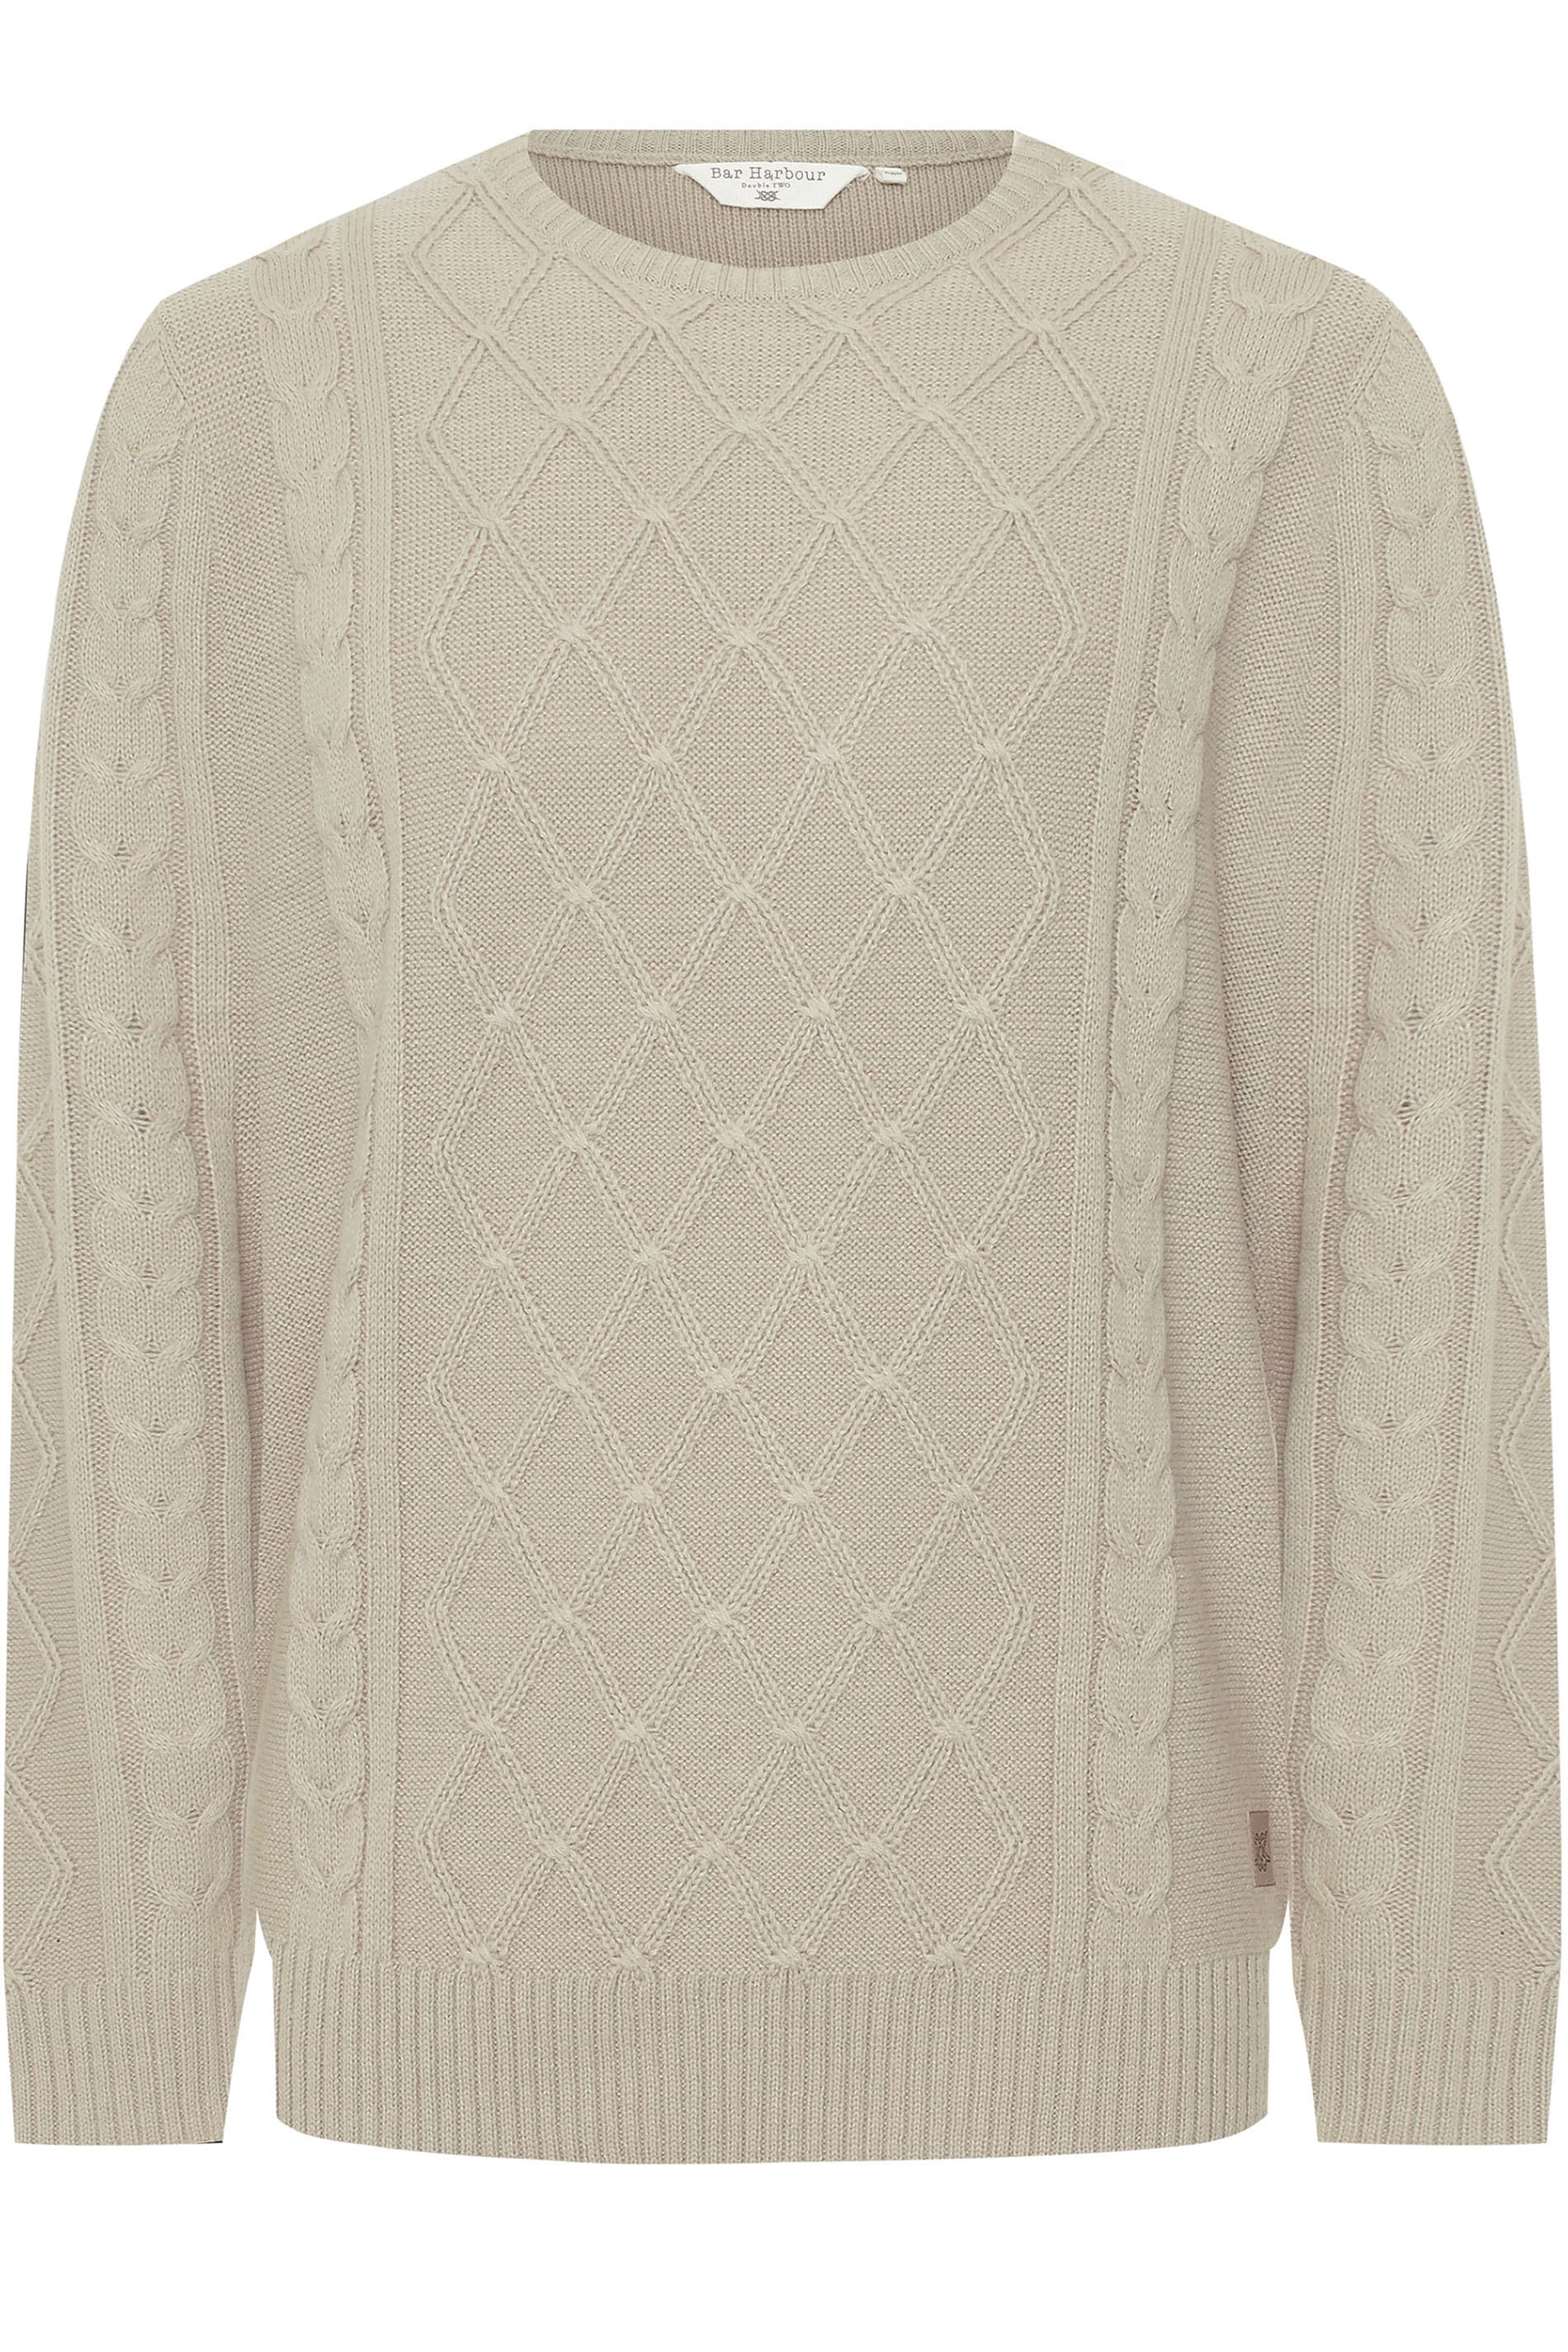 BAR HARBOUR Stone Cable Knit Knitted Jumper